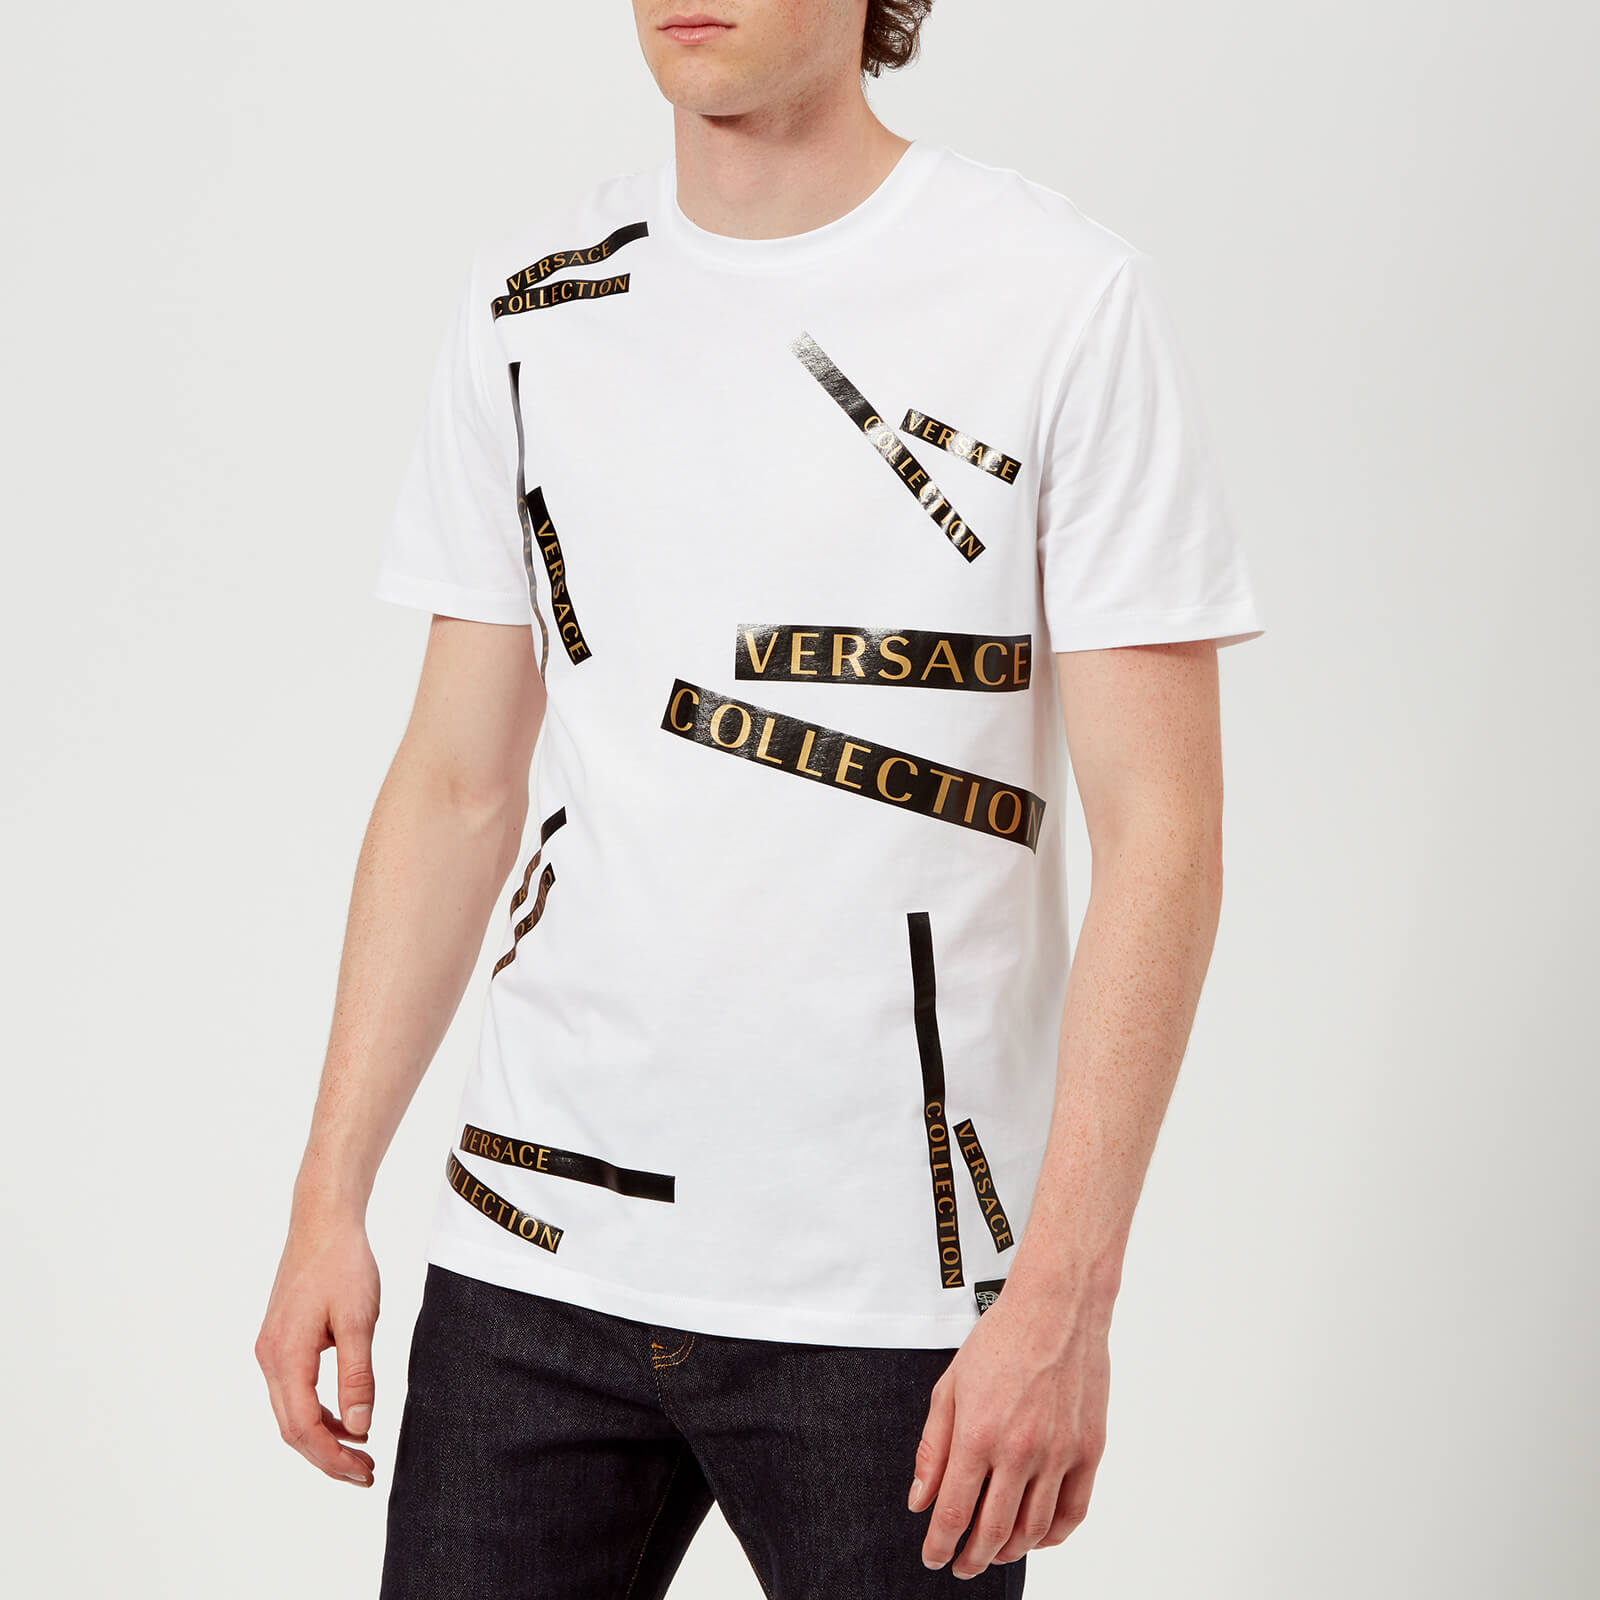 608d927a Versace Collection Men's Tape Detail T-Shirt - Bianco - Free UK Delivery  over £50